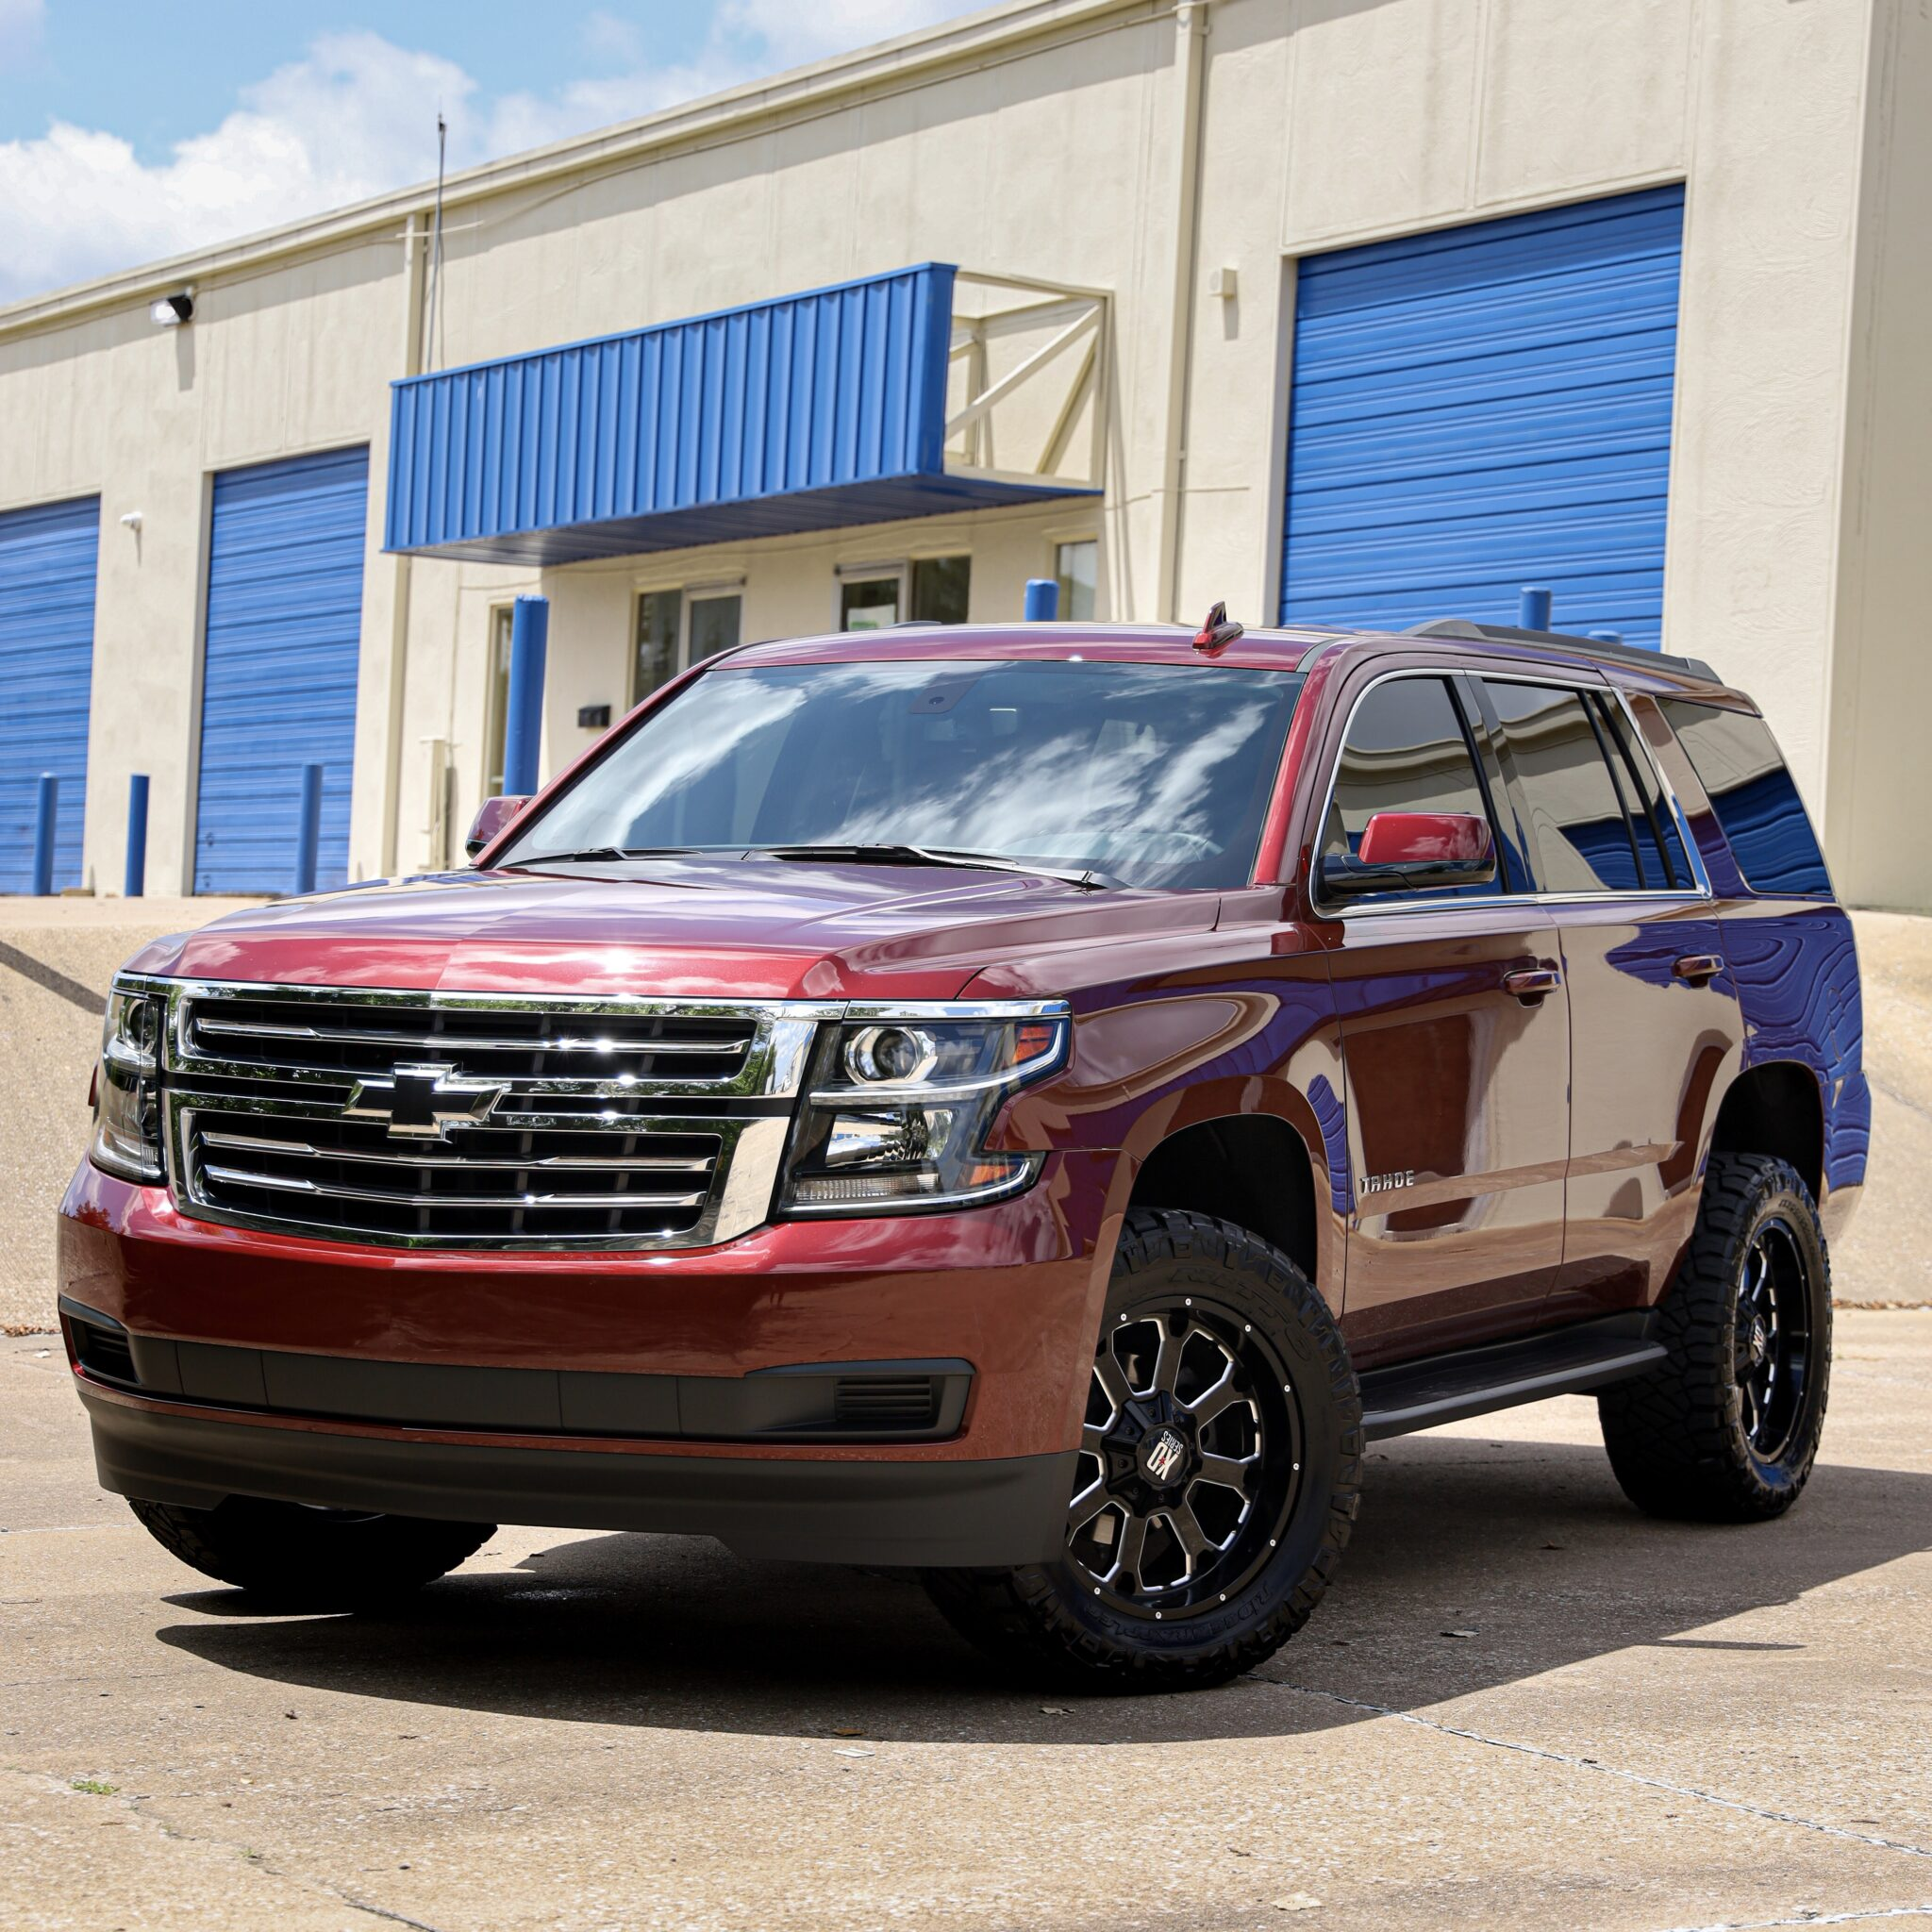 2020 Chevy Tahoe Red Integrity Customs